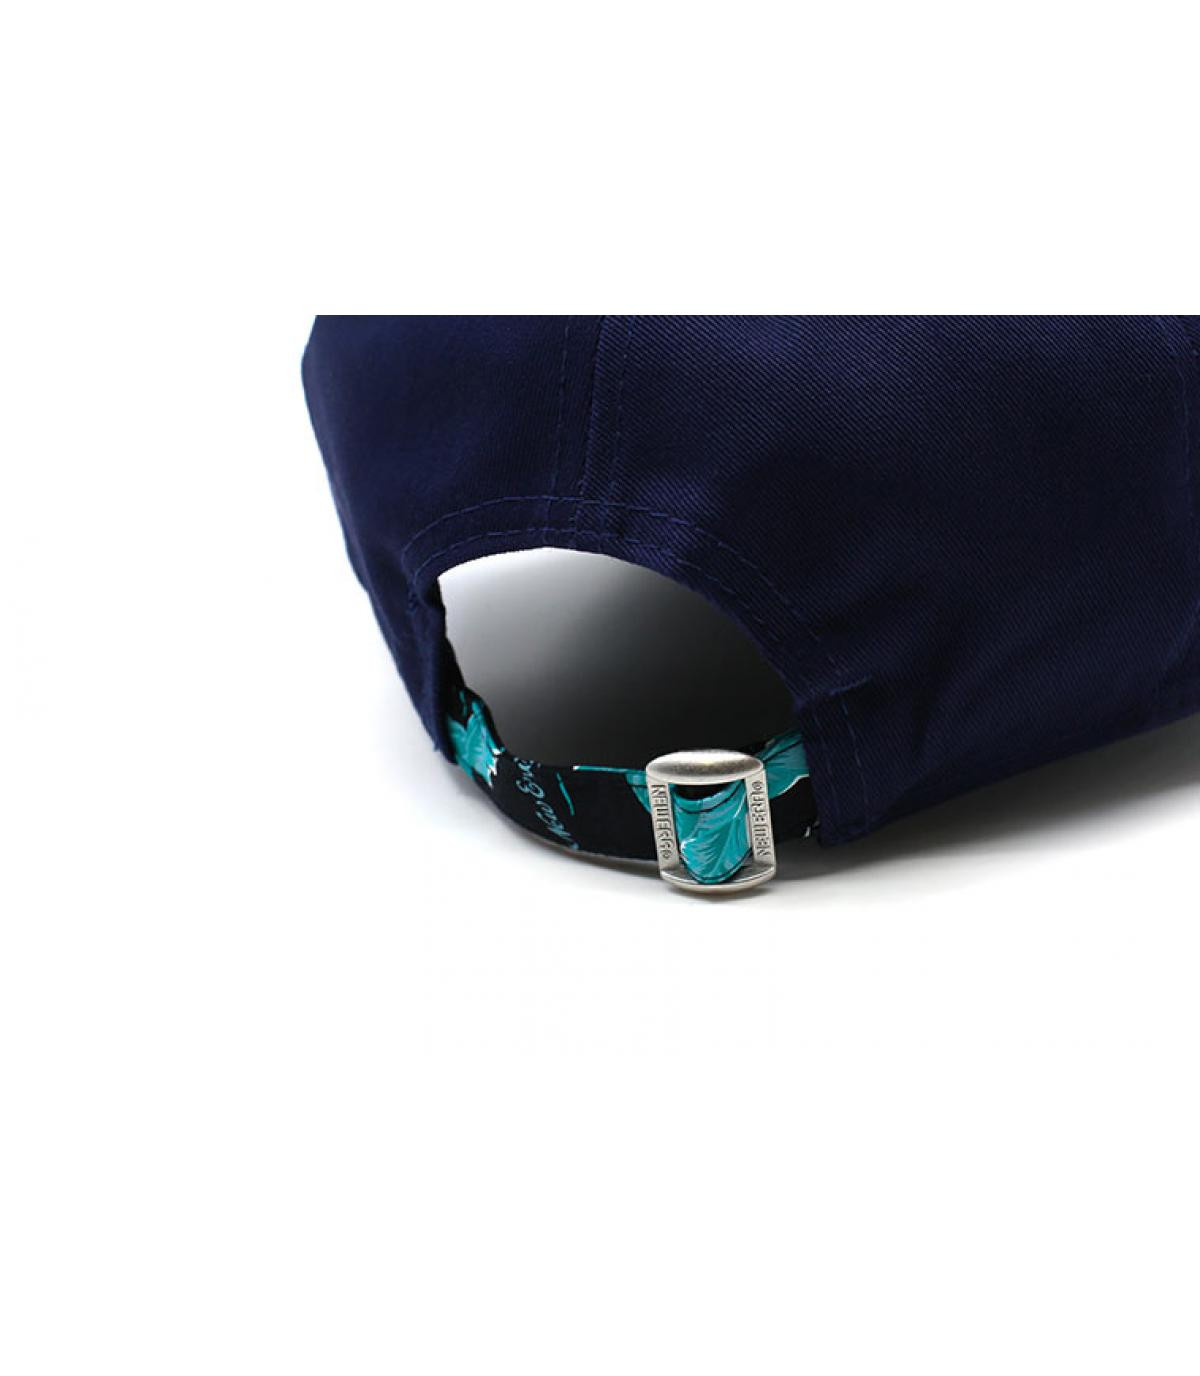 Détails MLB Light Weight NY 9Forty nay teal - image 5